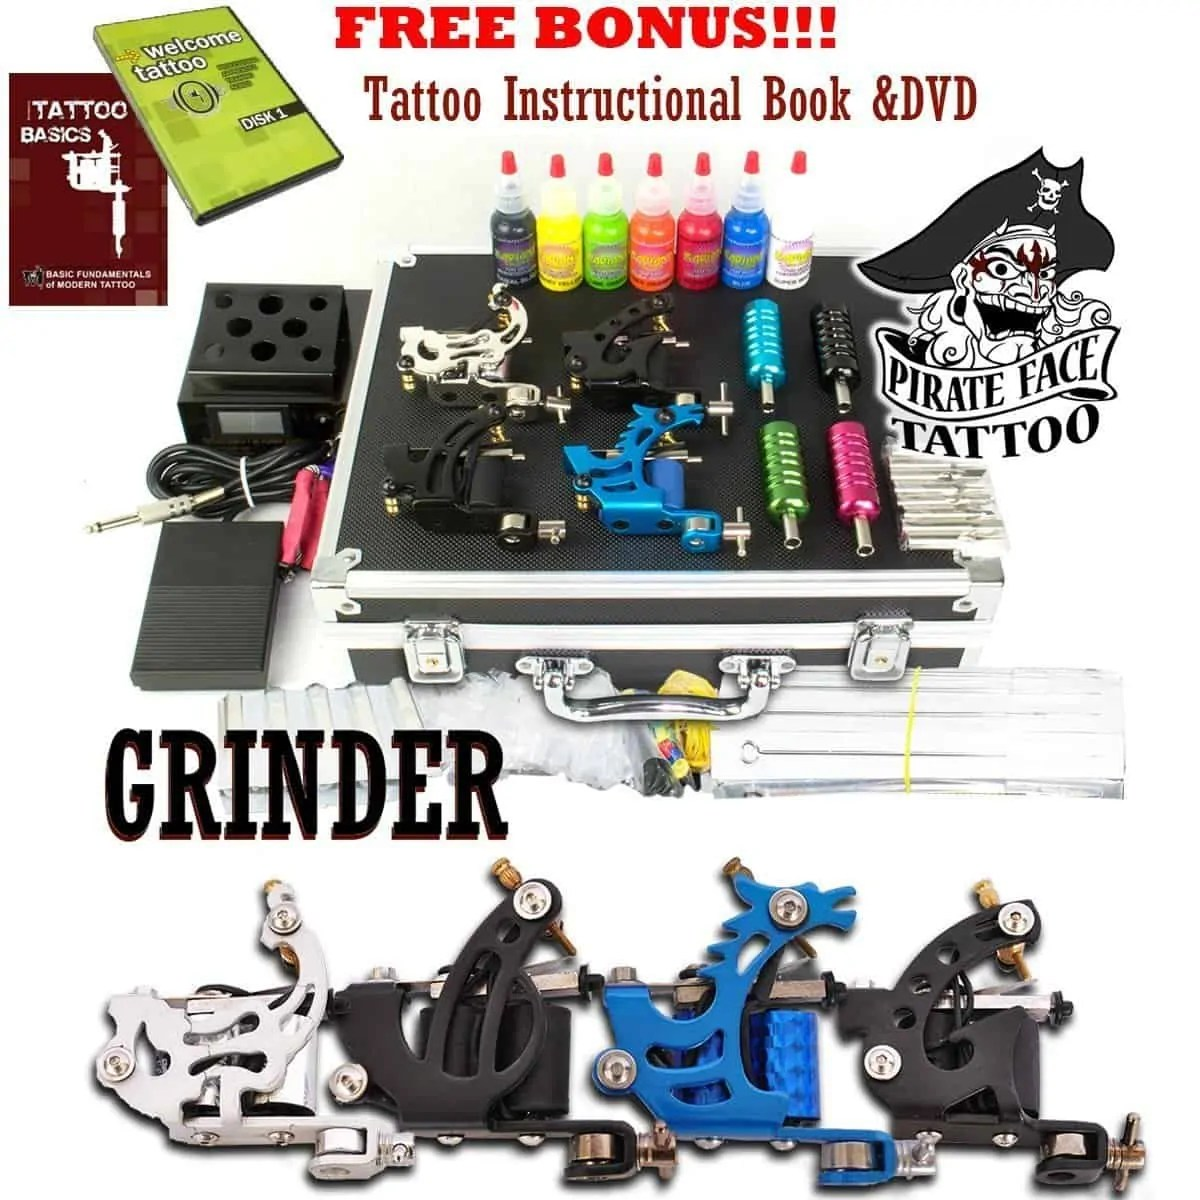 Cheap Tattoo Kits Recommendation – Grinder Tattoo Kit Review